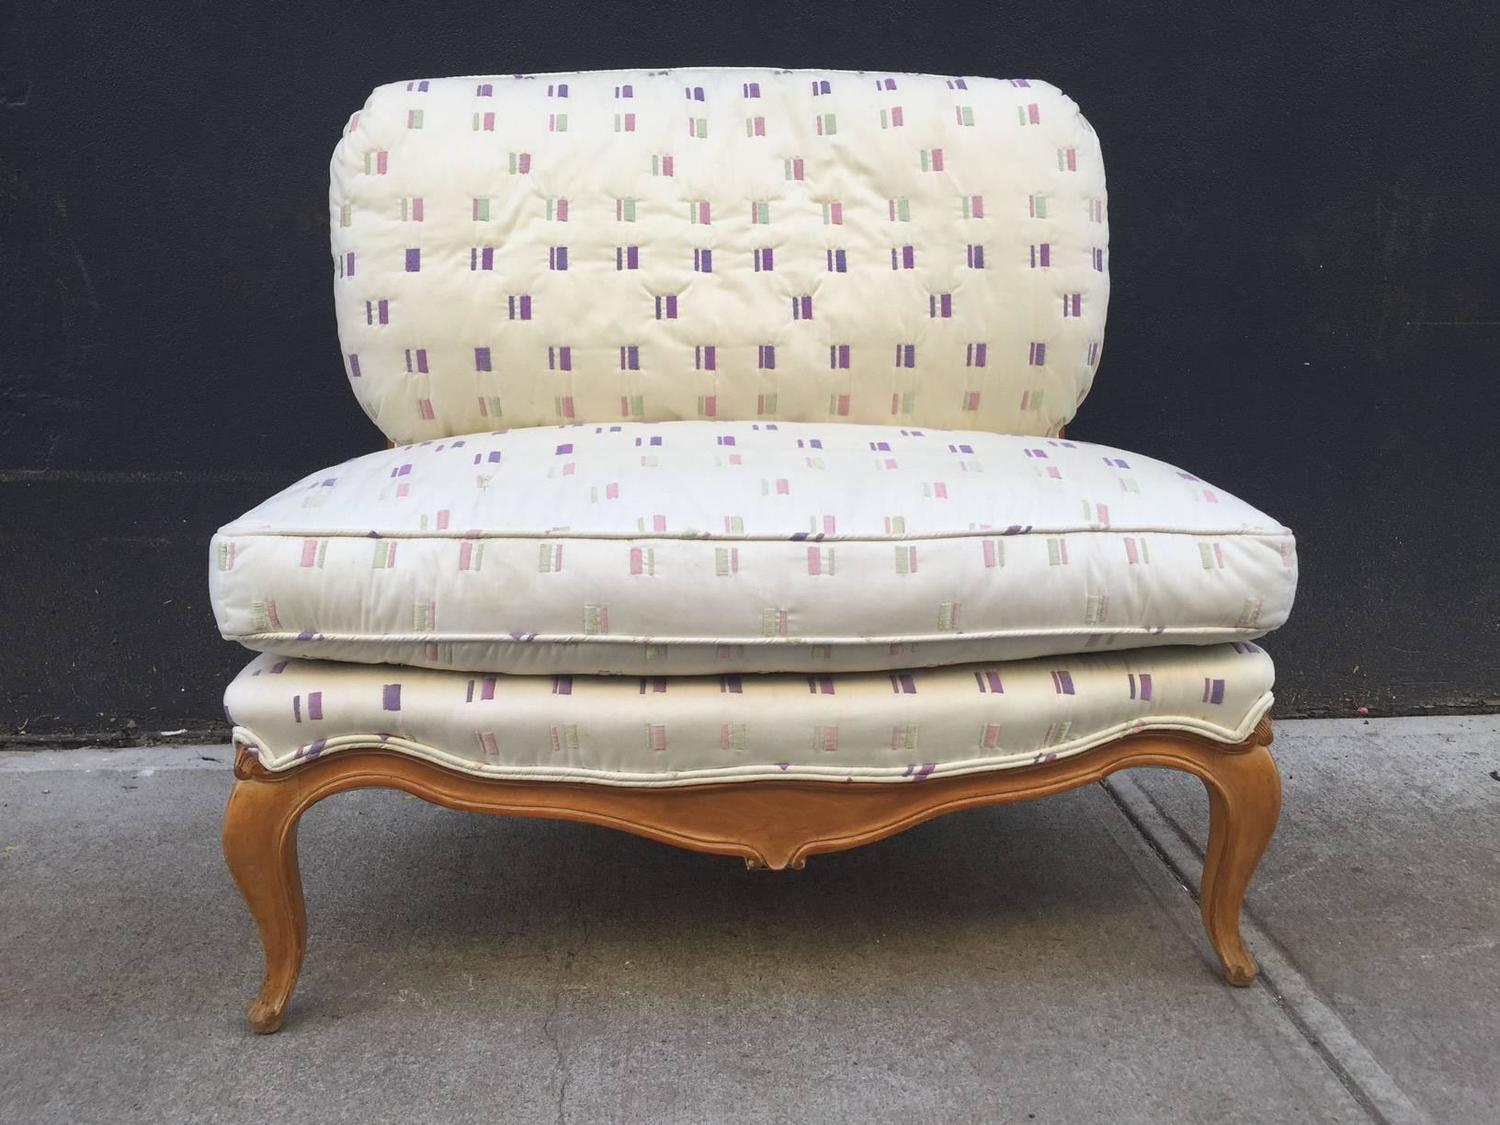 Louis xiv style french loveseat for sale at 1stdibs - Louis xiv sofa ...